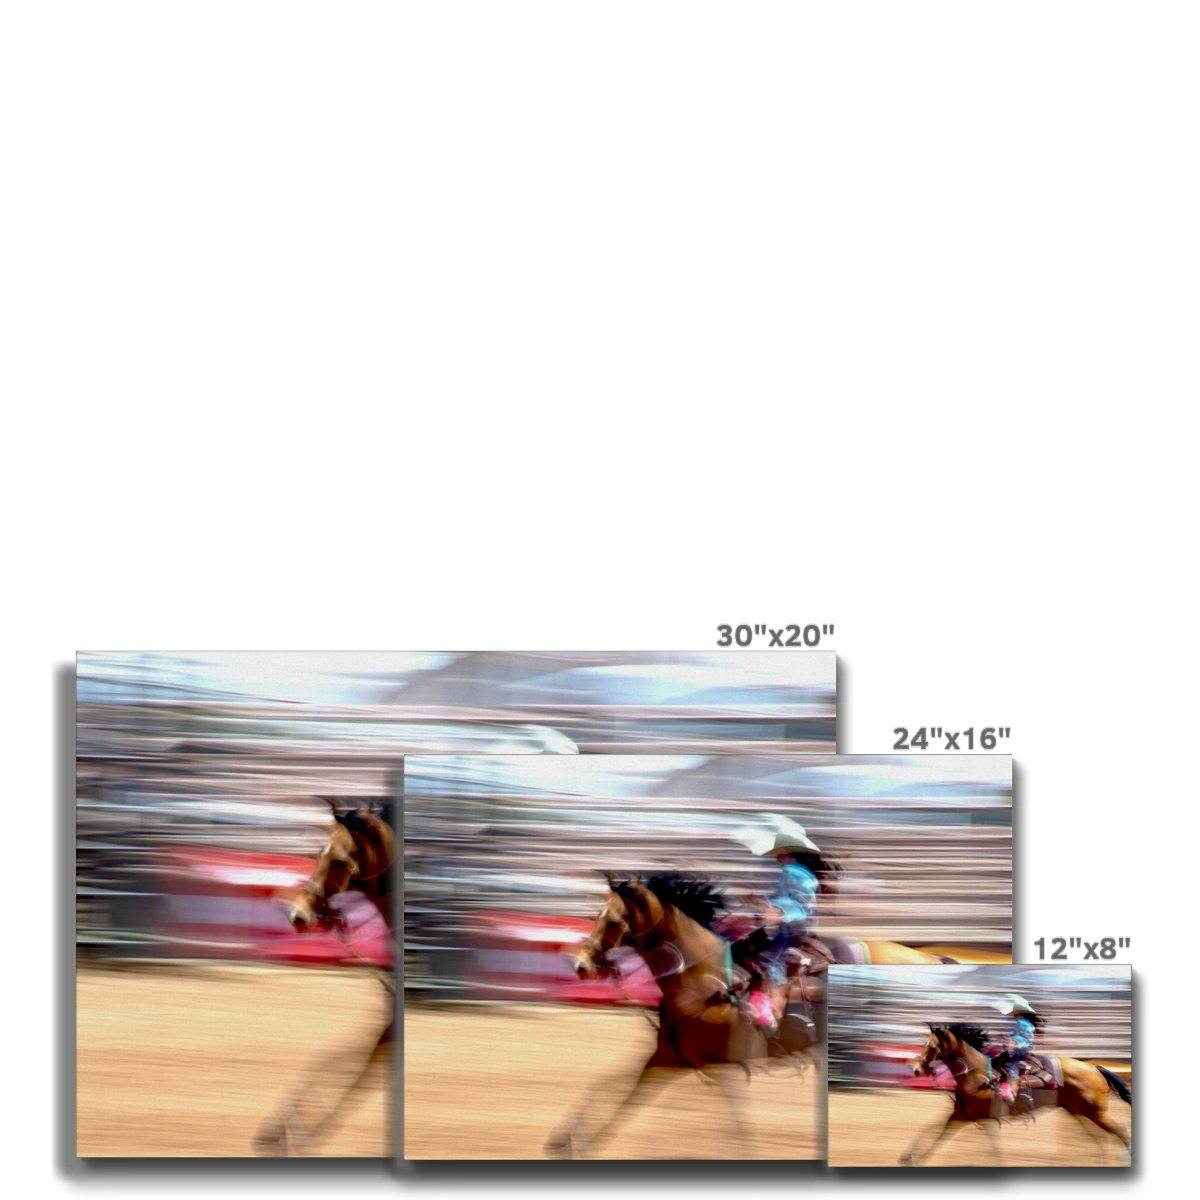 Rodeo Gal: On the Run in a White Hat, Fine Art Print on Canvas - Norlynne Coar Fine Art